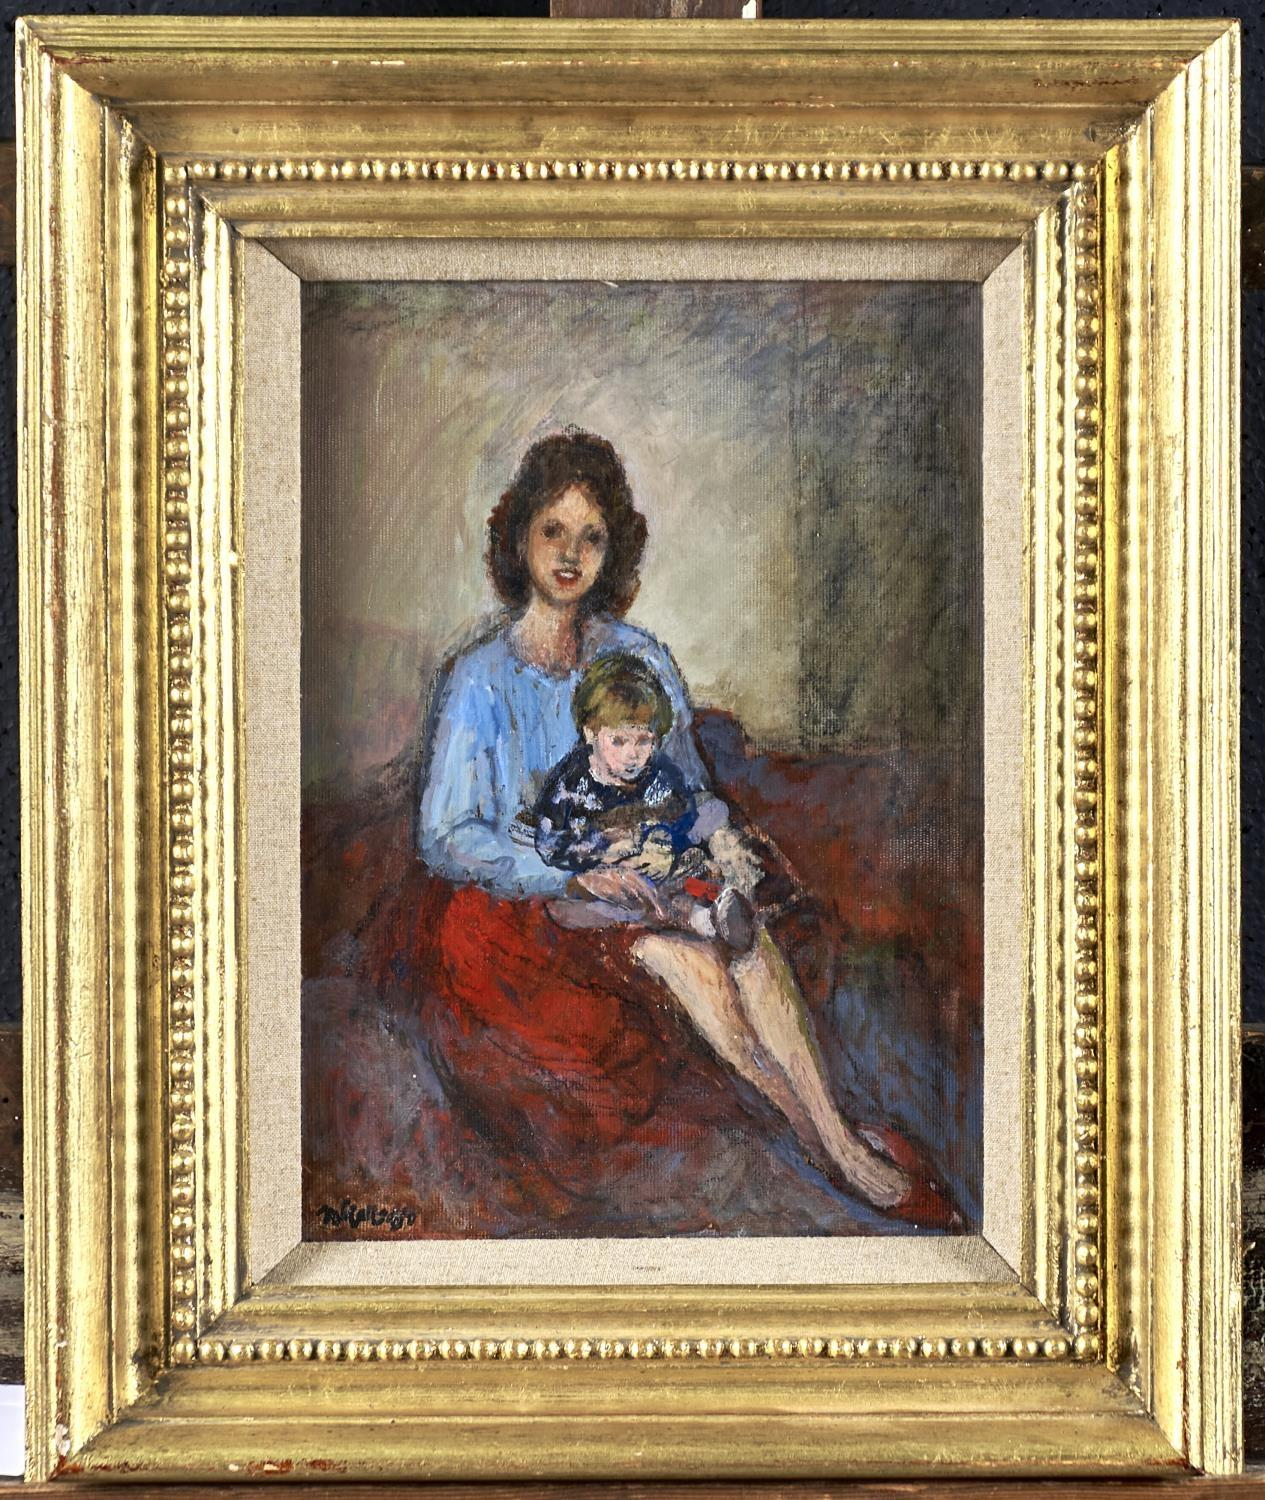 CHARLES JAMES MCCALL (1907-1989) -MOTHER AND CHILD, SIGNED AND DATED '88, OIL ON BOARD, 28 X 20. - Image 2 of 3